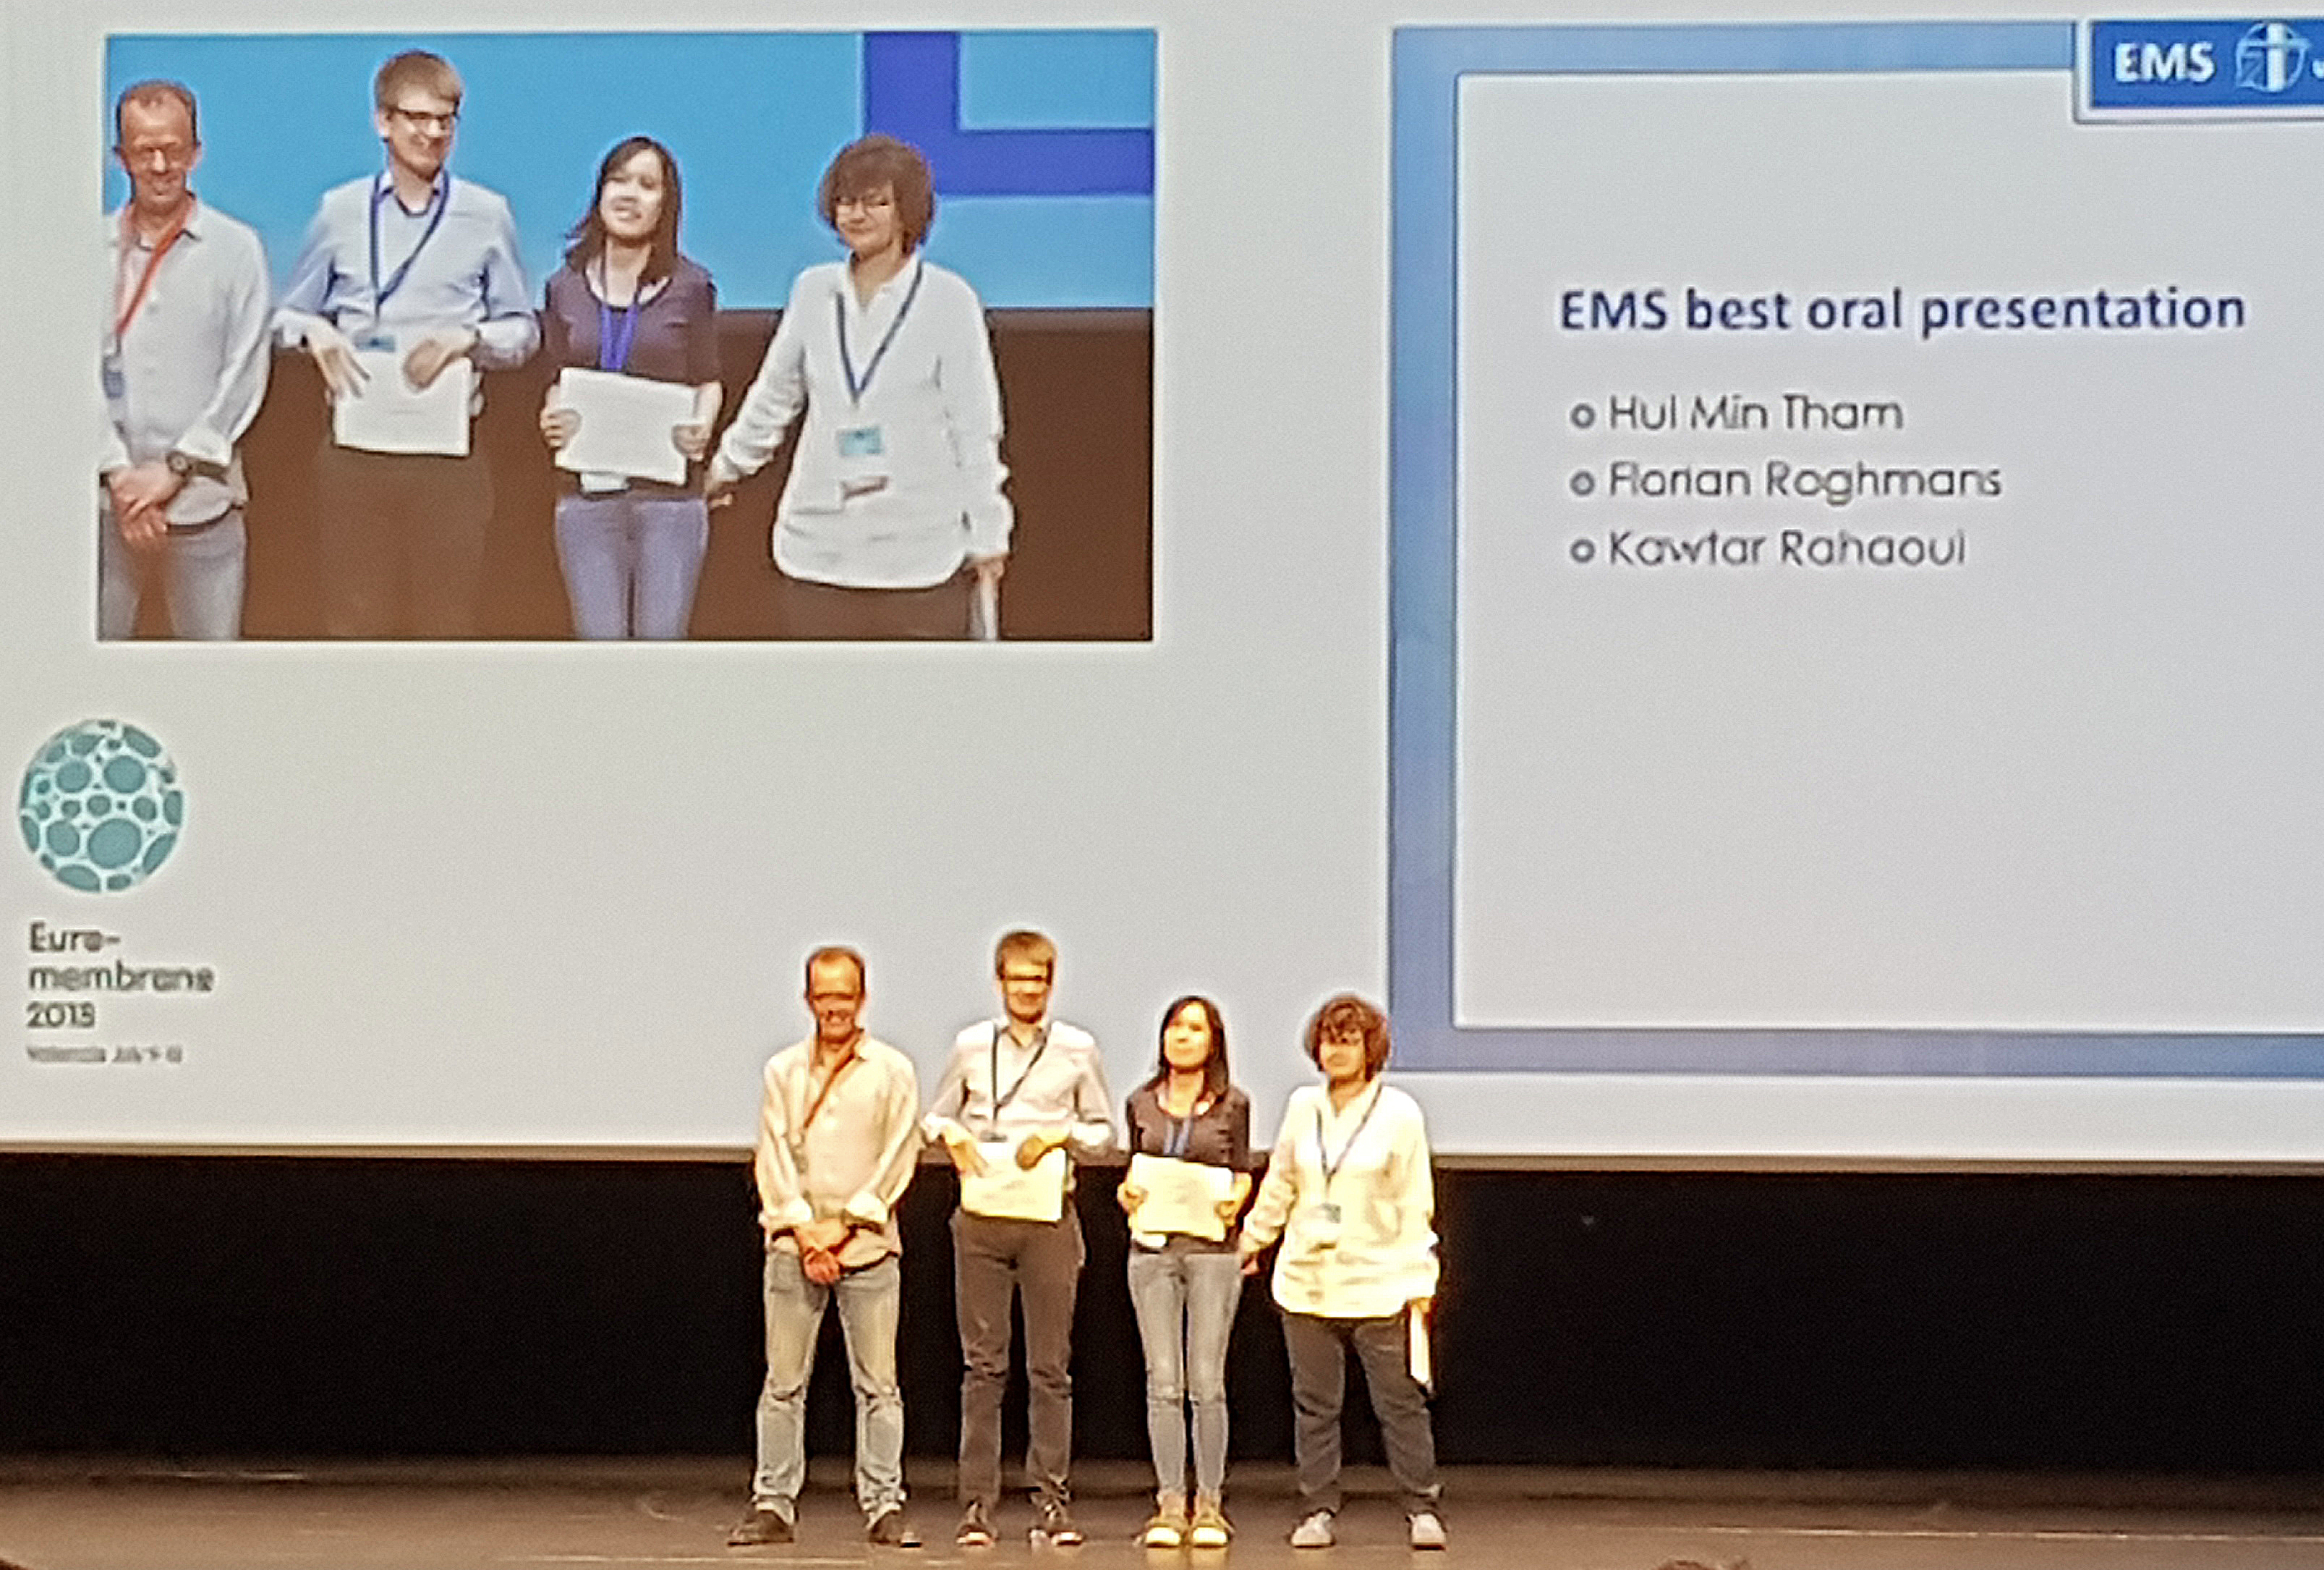 Florian Roghmans wins Best Oral Presentation Award on Euromembrane